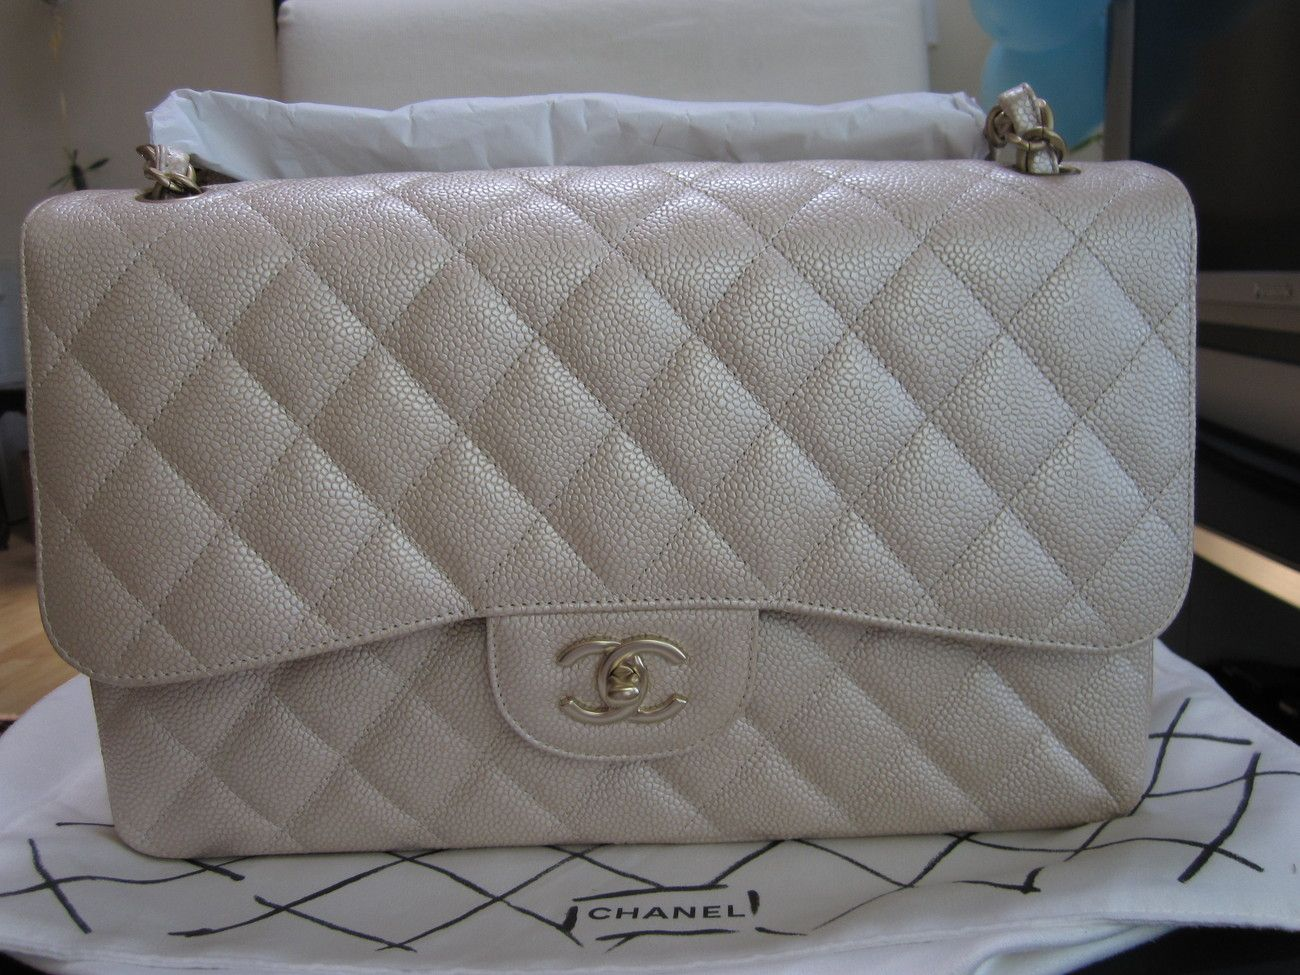 0718602c3 Brand New Chanel Pearly Beige Caviar Leather GHW 2012P Classic Jumbo Flap -  Handbags & Bags